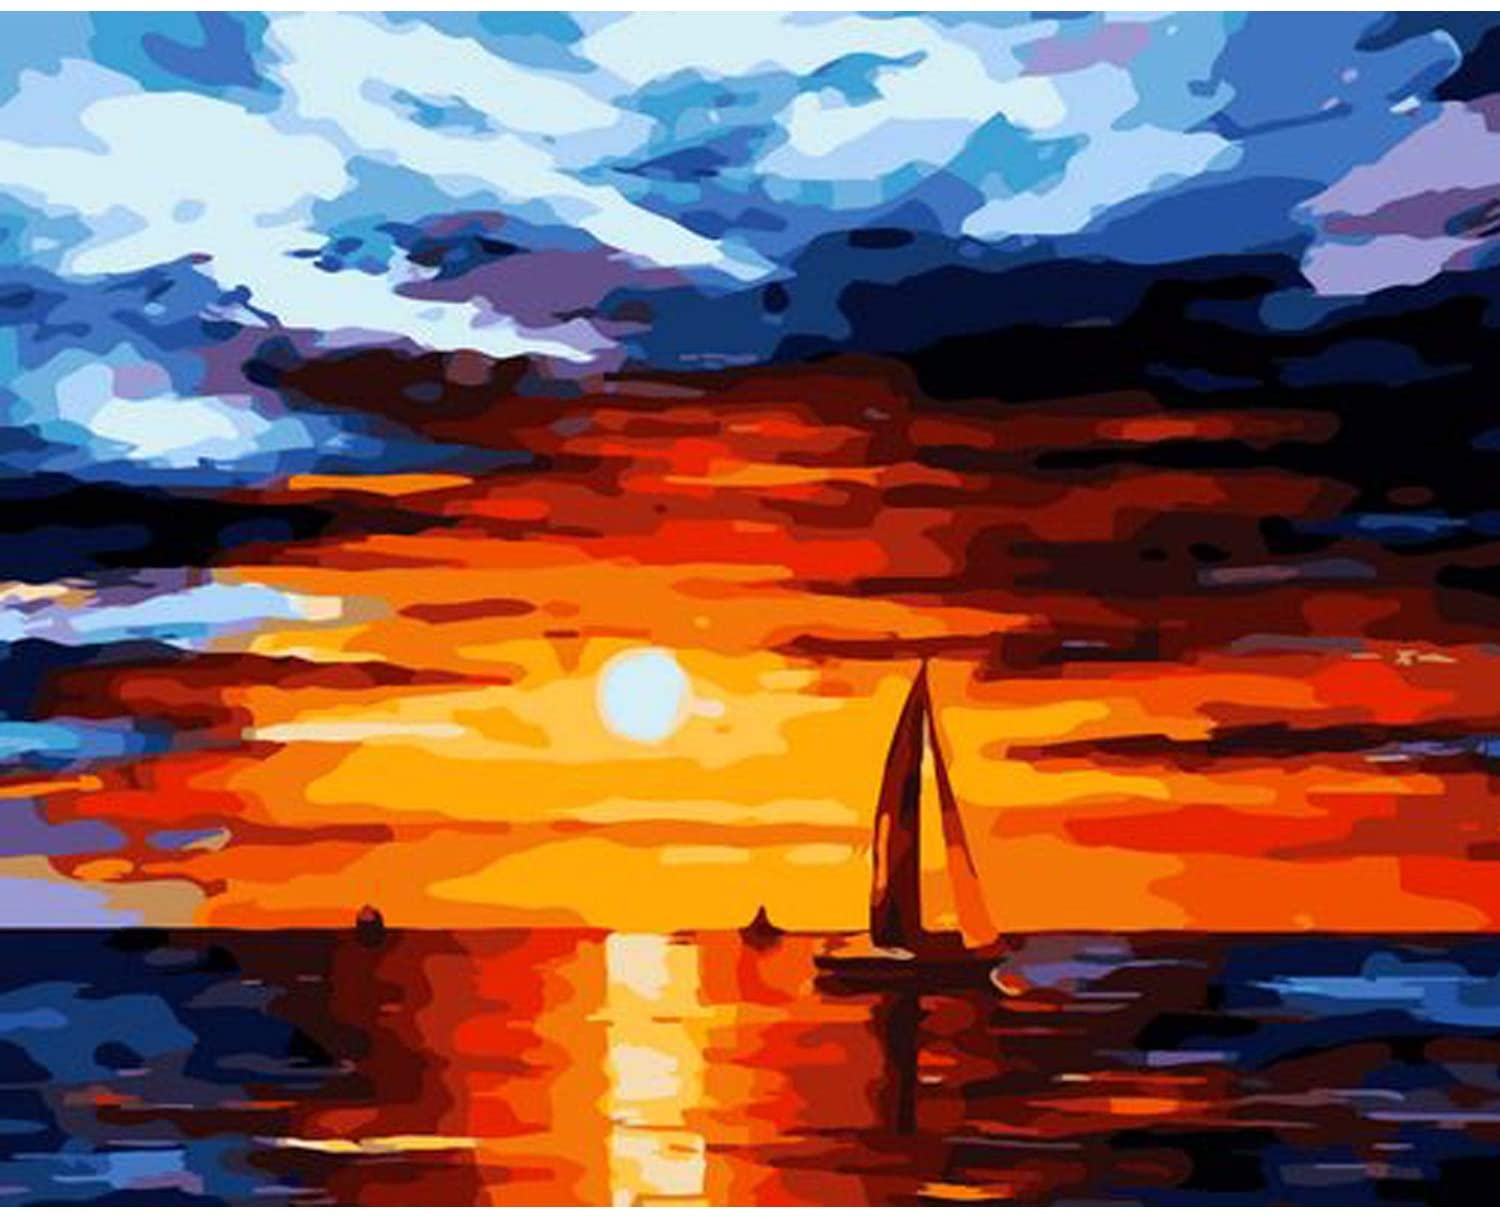 Adults Paint by Numbers On Canvas,Sunset & Sailing & Boat Painting by Numbers for Kids & & Beginne,16 x 20 inch DIY Canvas Colorful Talk Oil Painting Drawing Kit,Paintwork with Paintbrushes